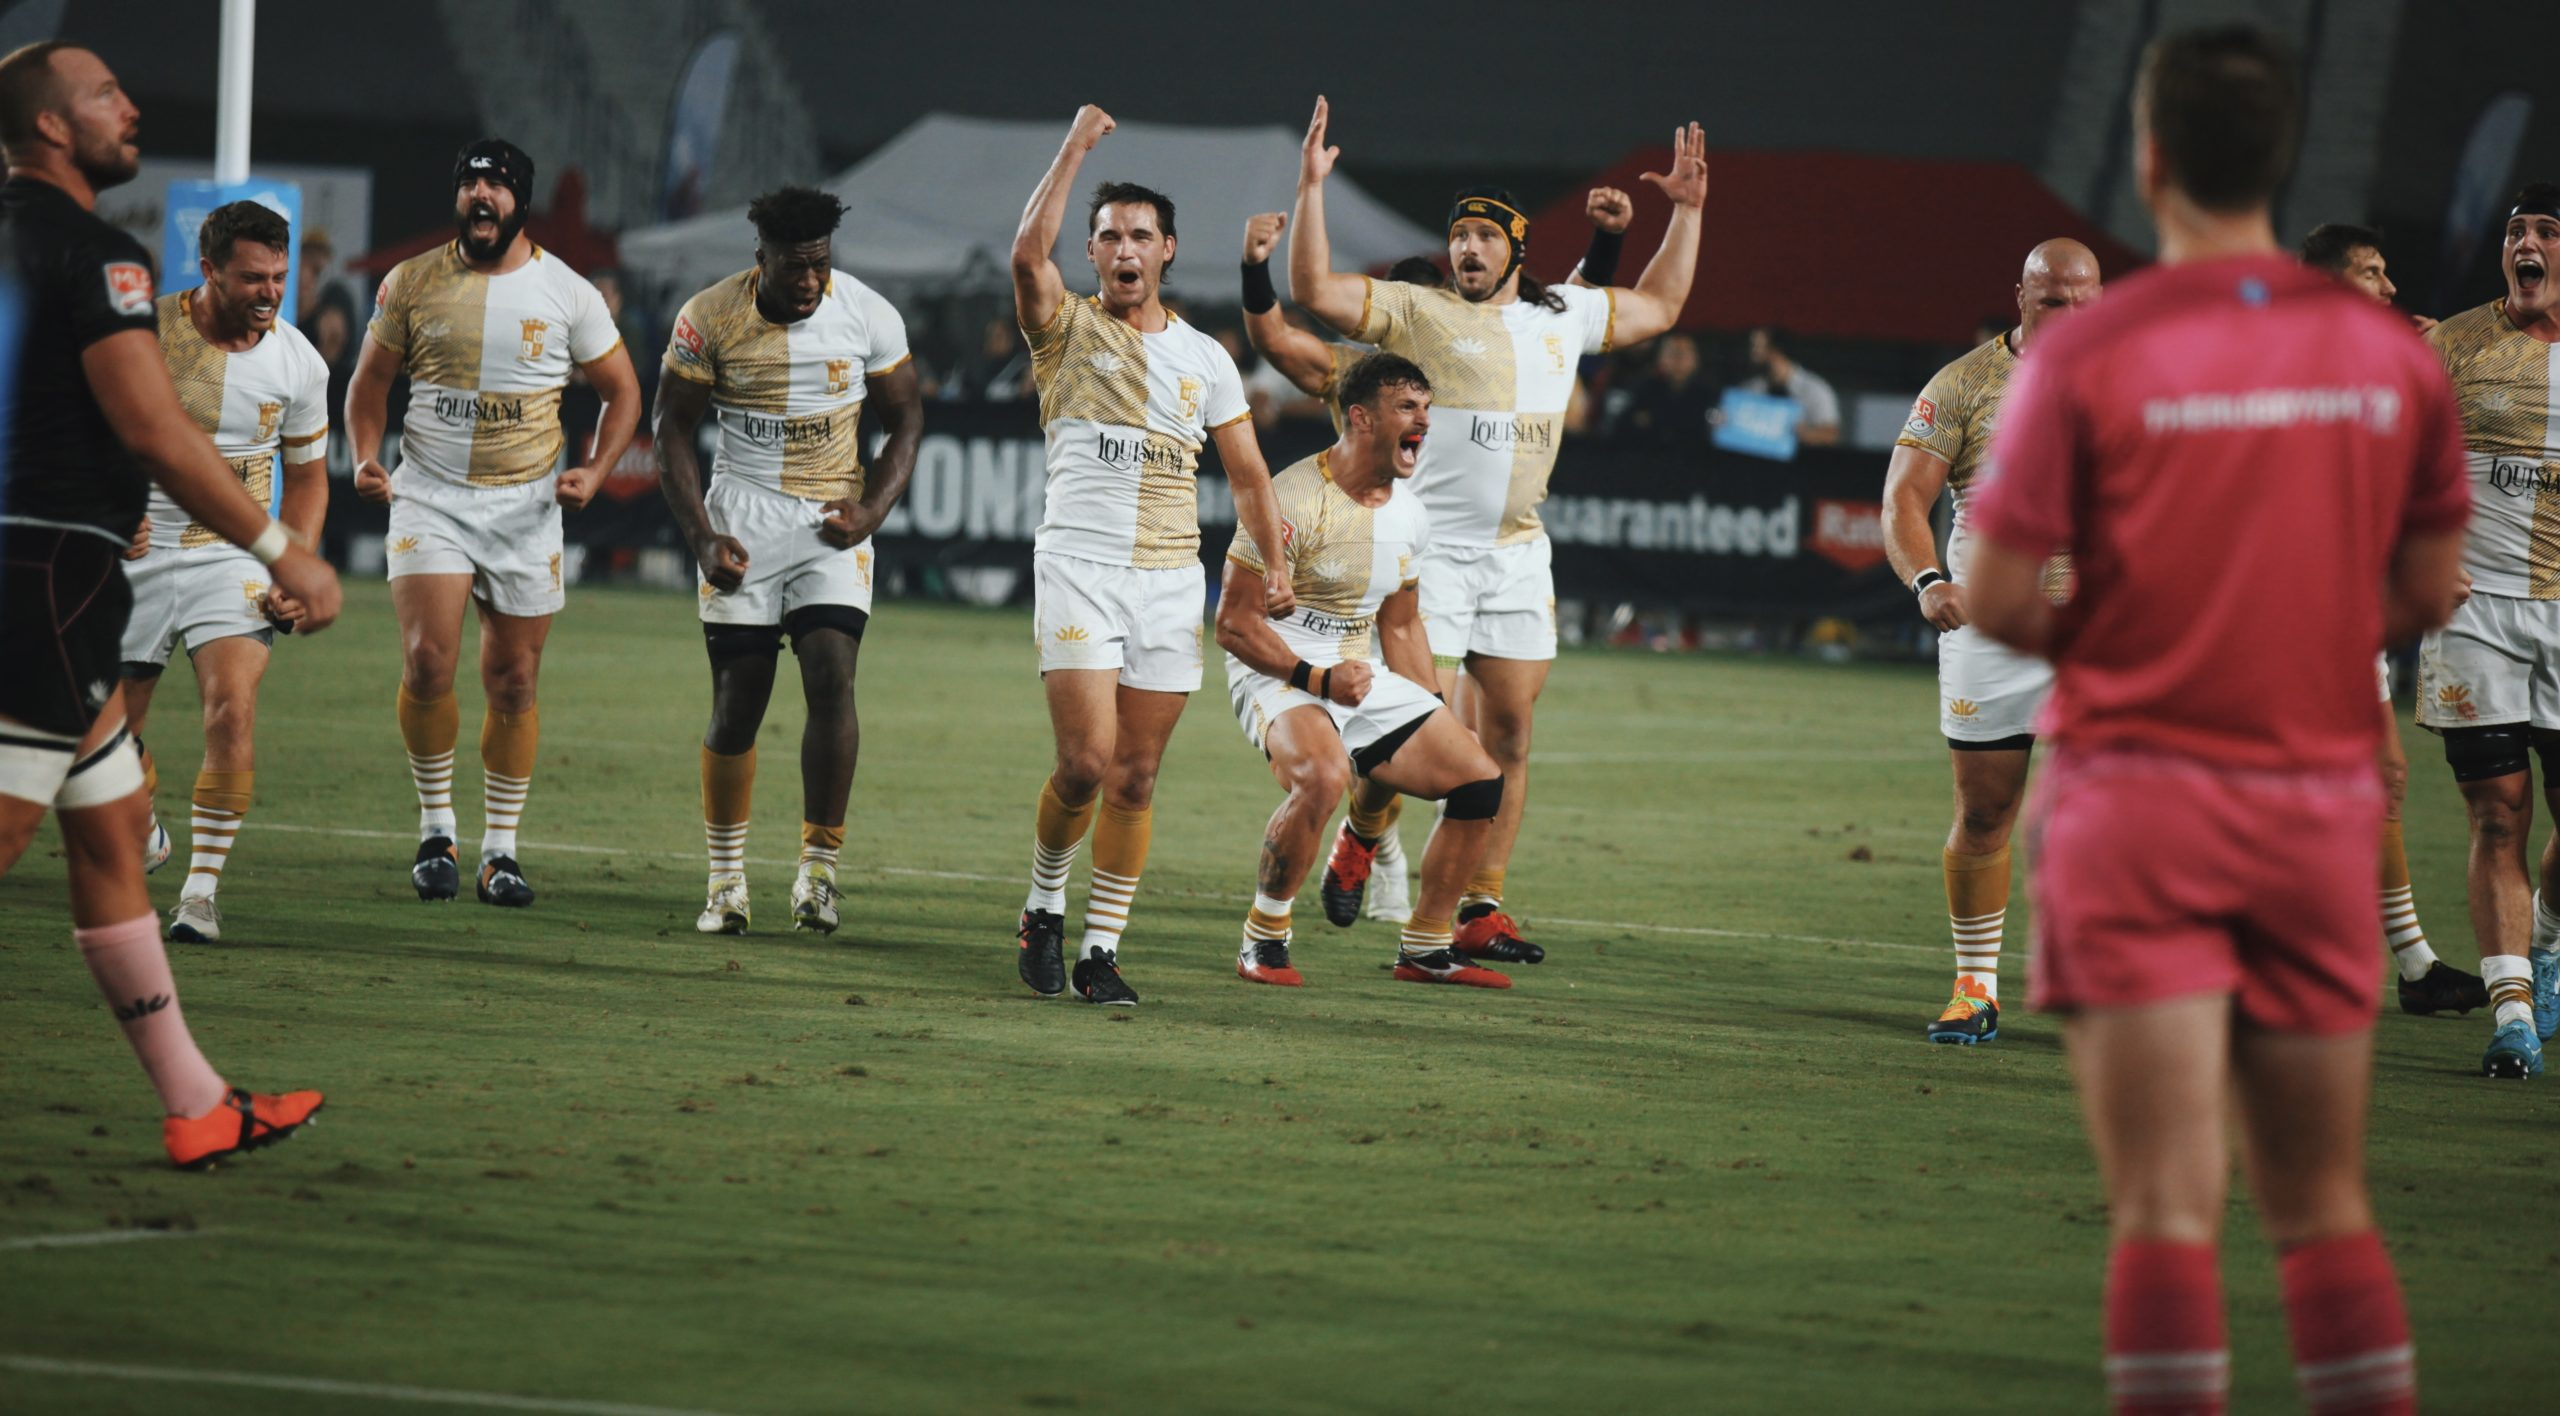 The Gold Defeat the Giltinis